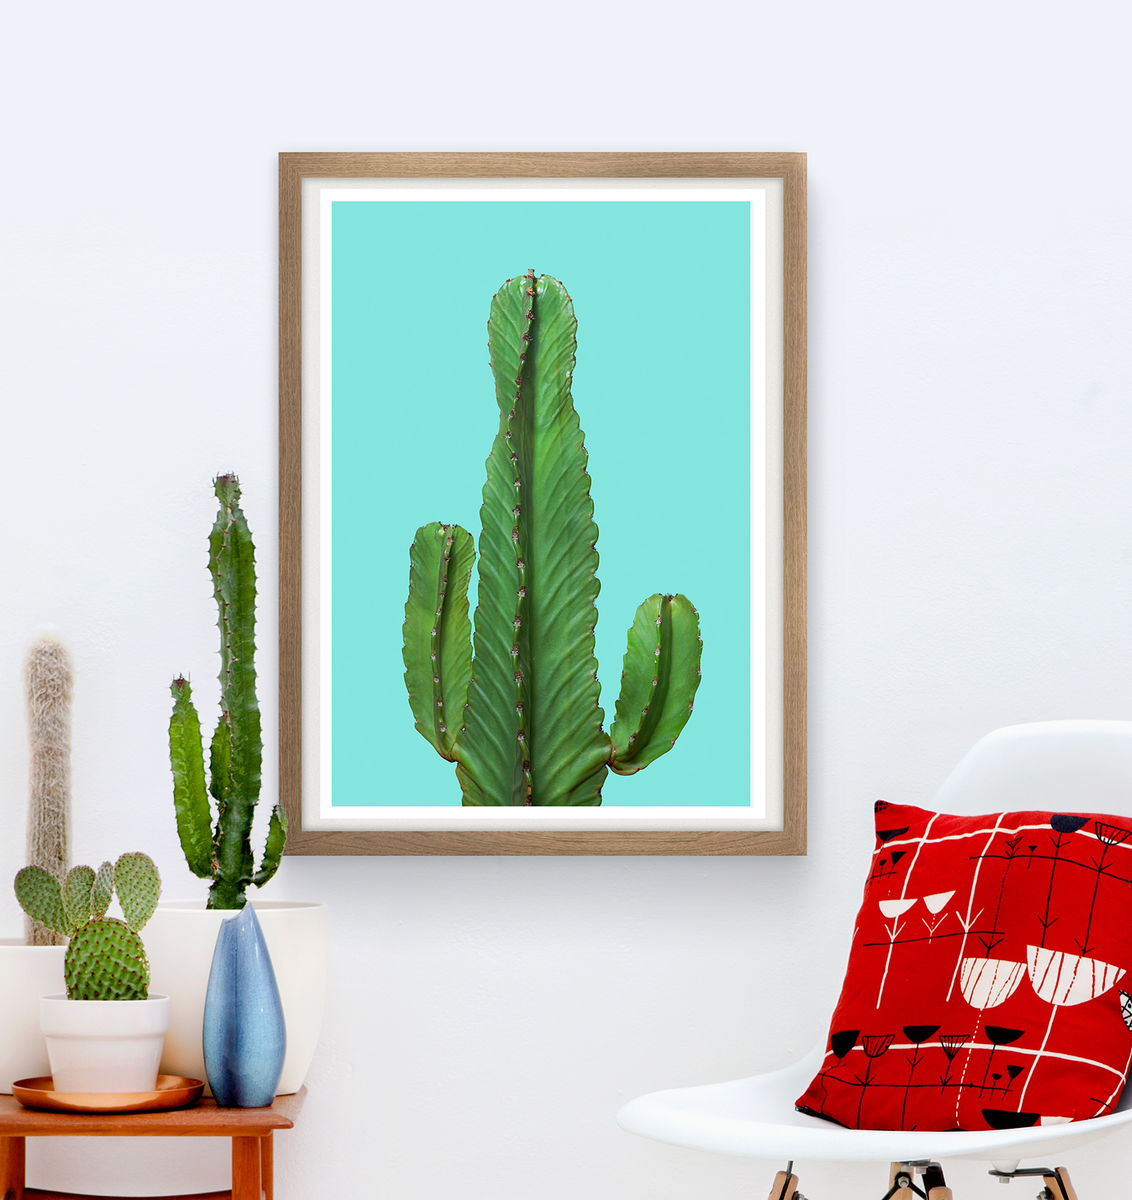 Cactus poster, Botanicalposter, Bohemian wall art - product images  of